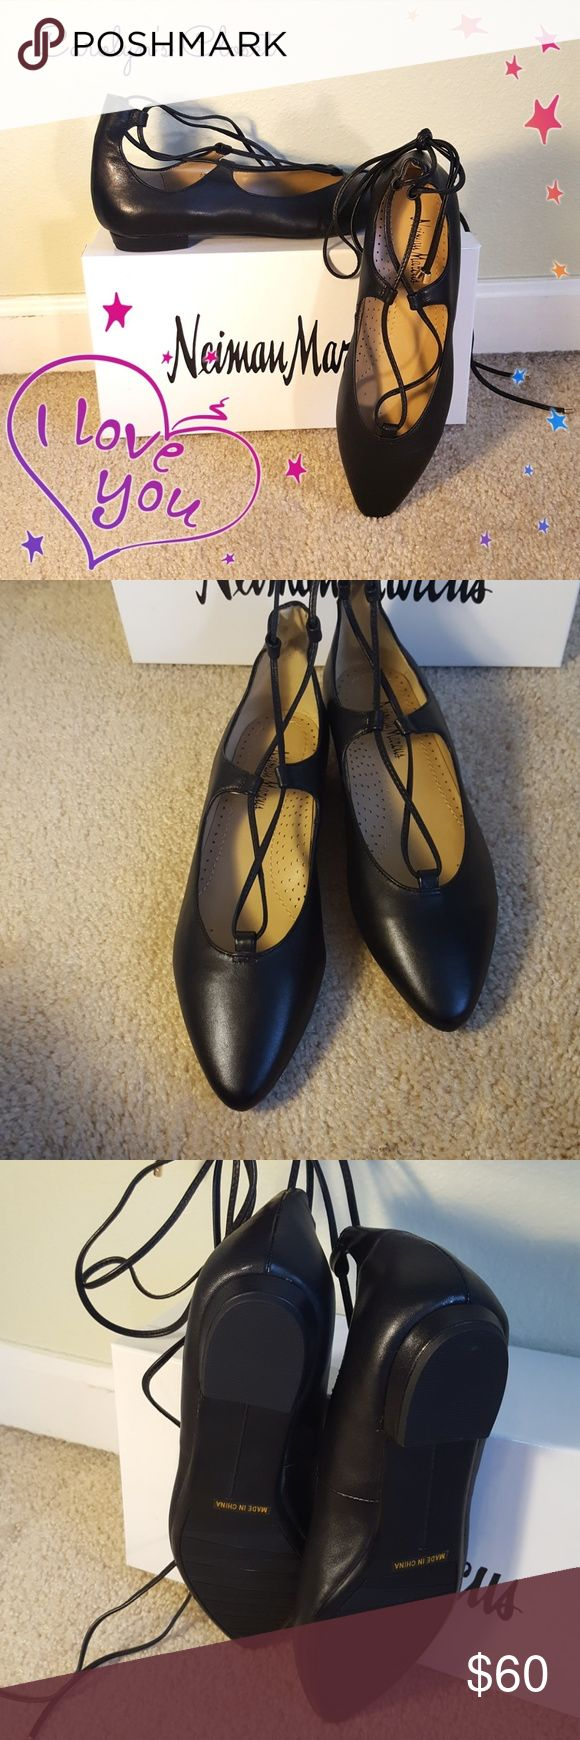 NIB! Black Leather Ballet Flats SO COMFORTABLE and Feminine! Size runs true!!! Neiman Marcus Shoes Flats & Loafers